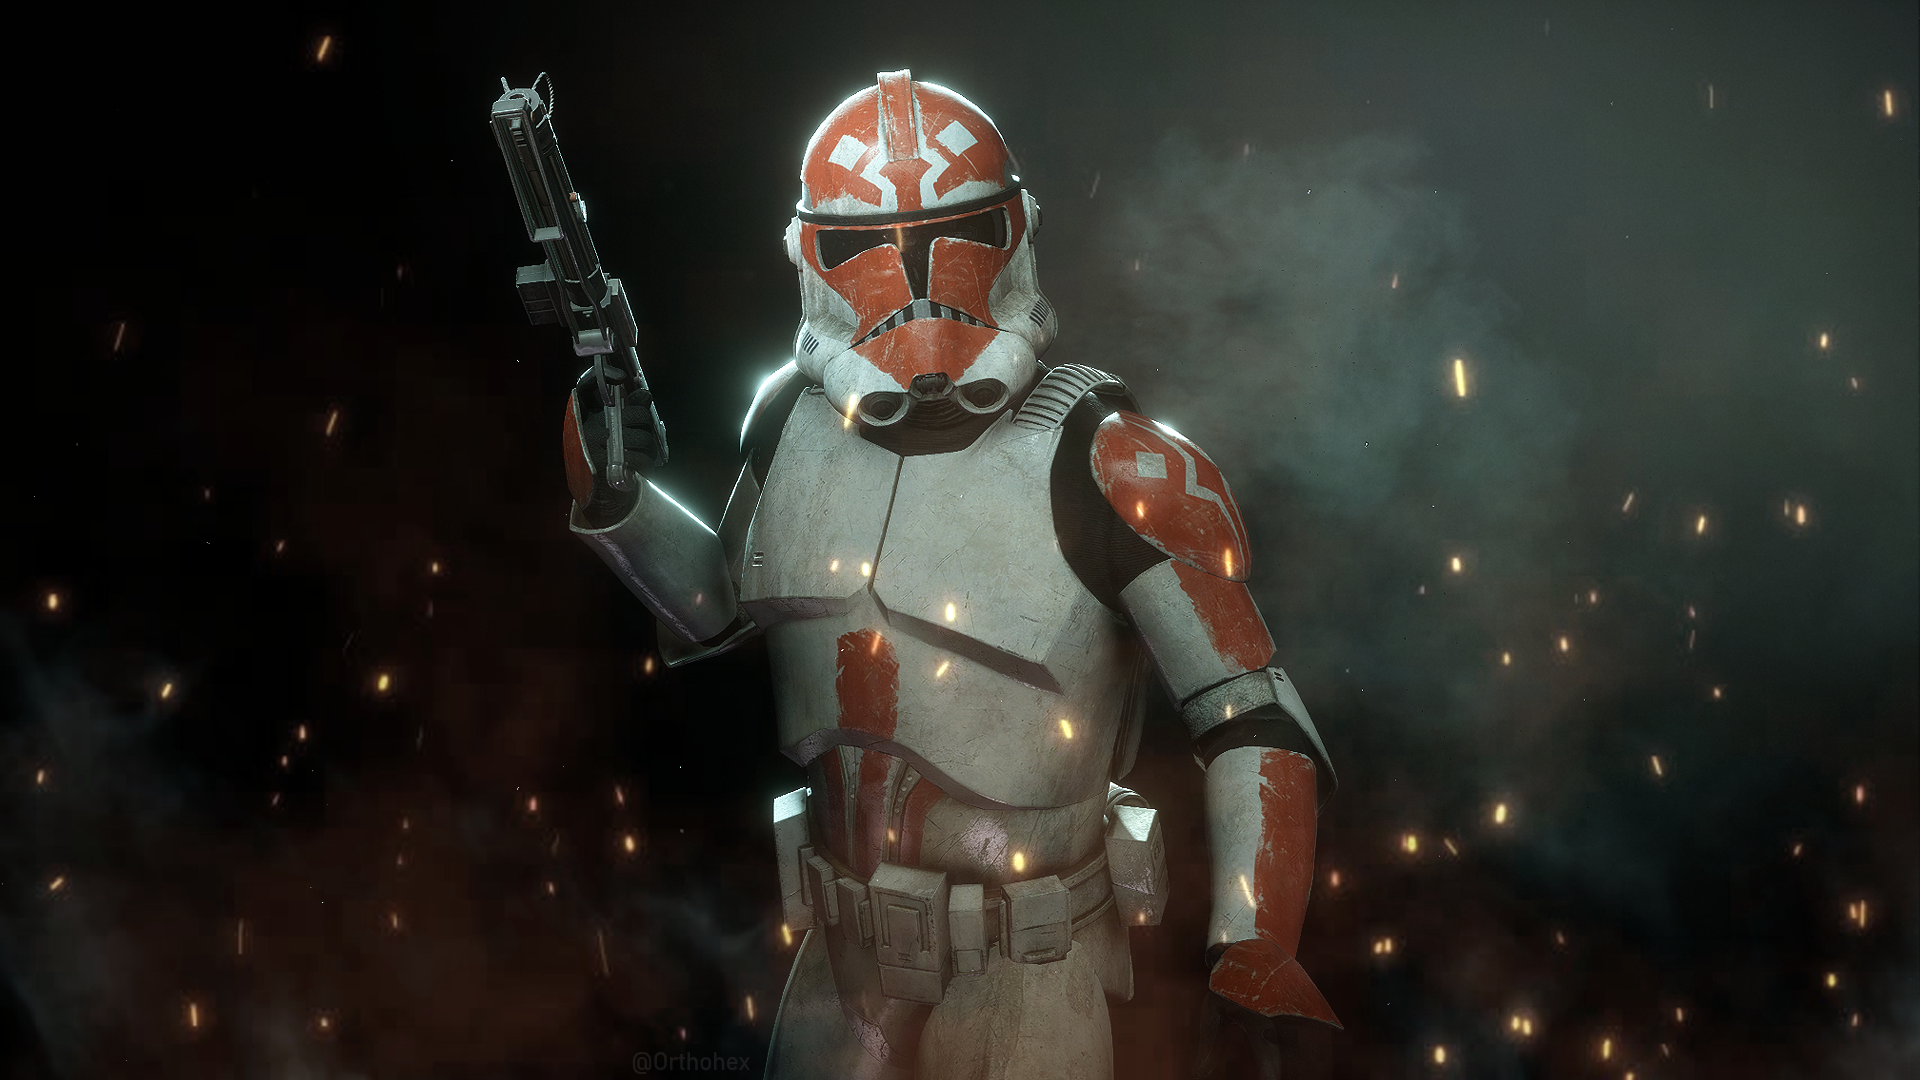 To celebrate #CloneWarsSaved, I recreated the 332nd ahead of the new  season. : StarWarsBattlefront